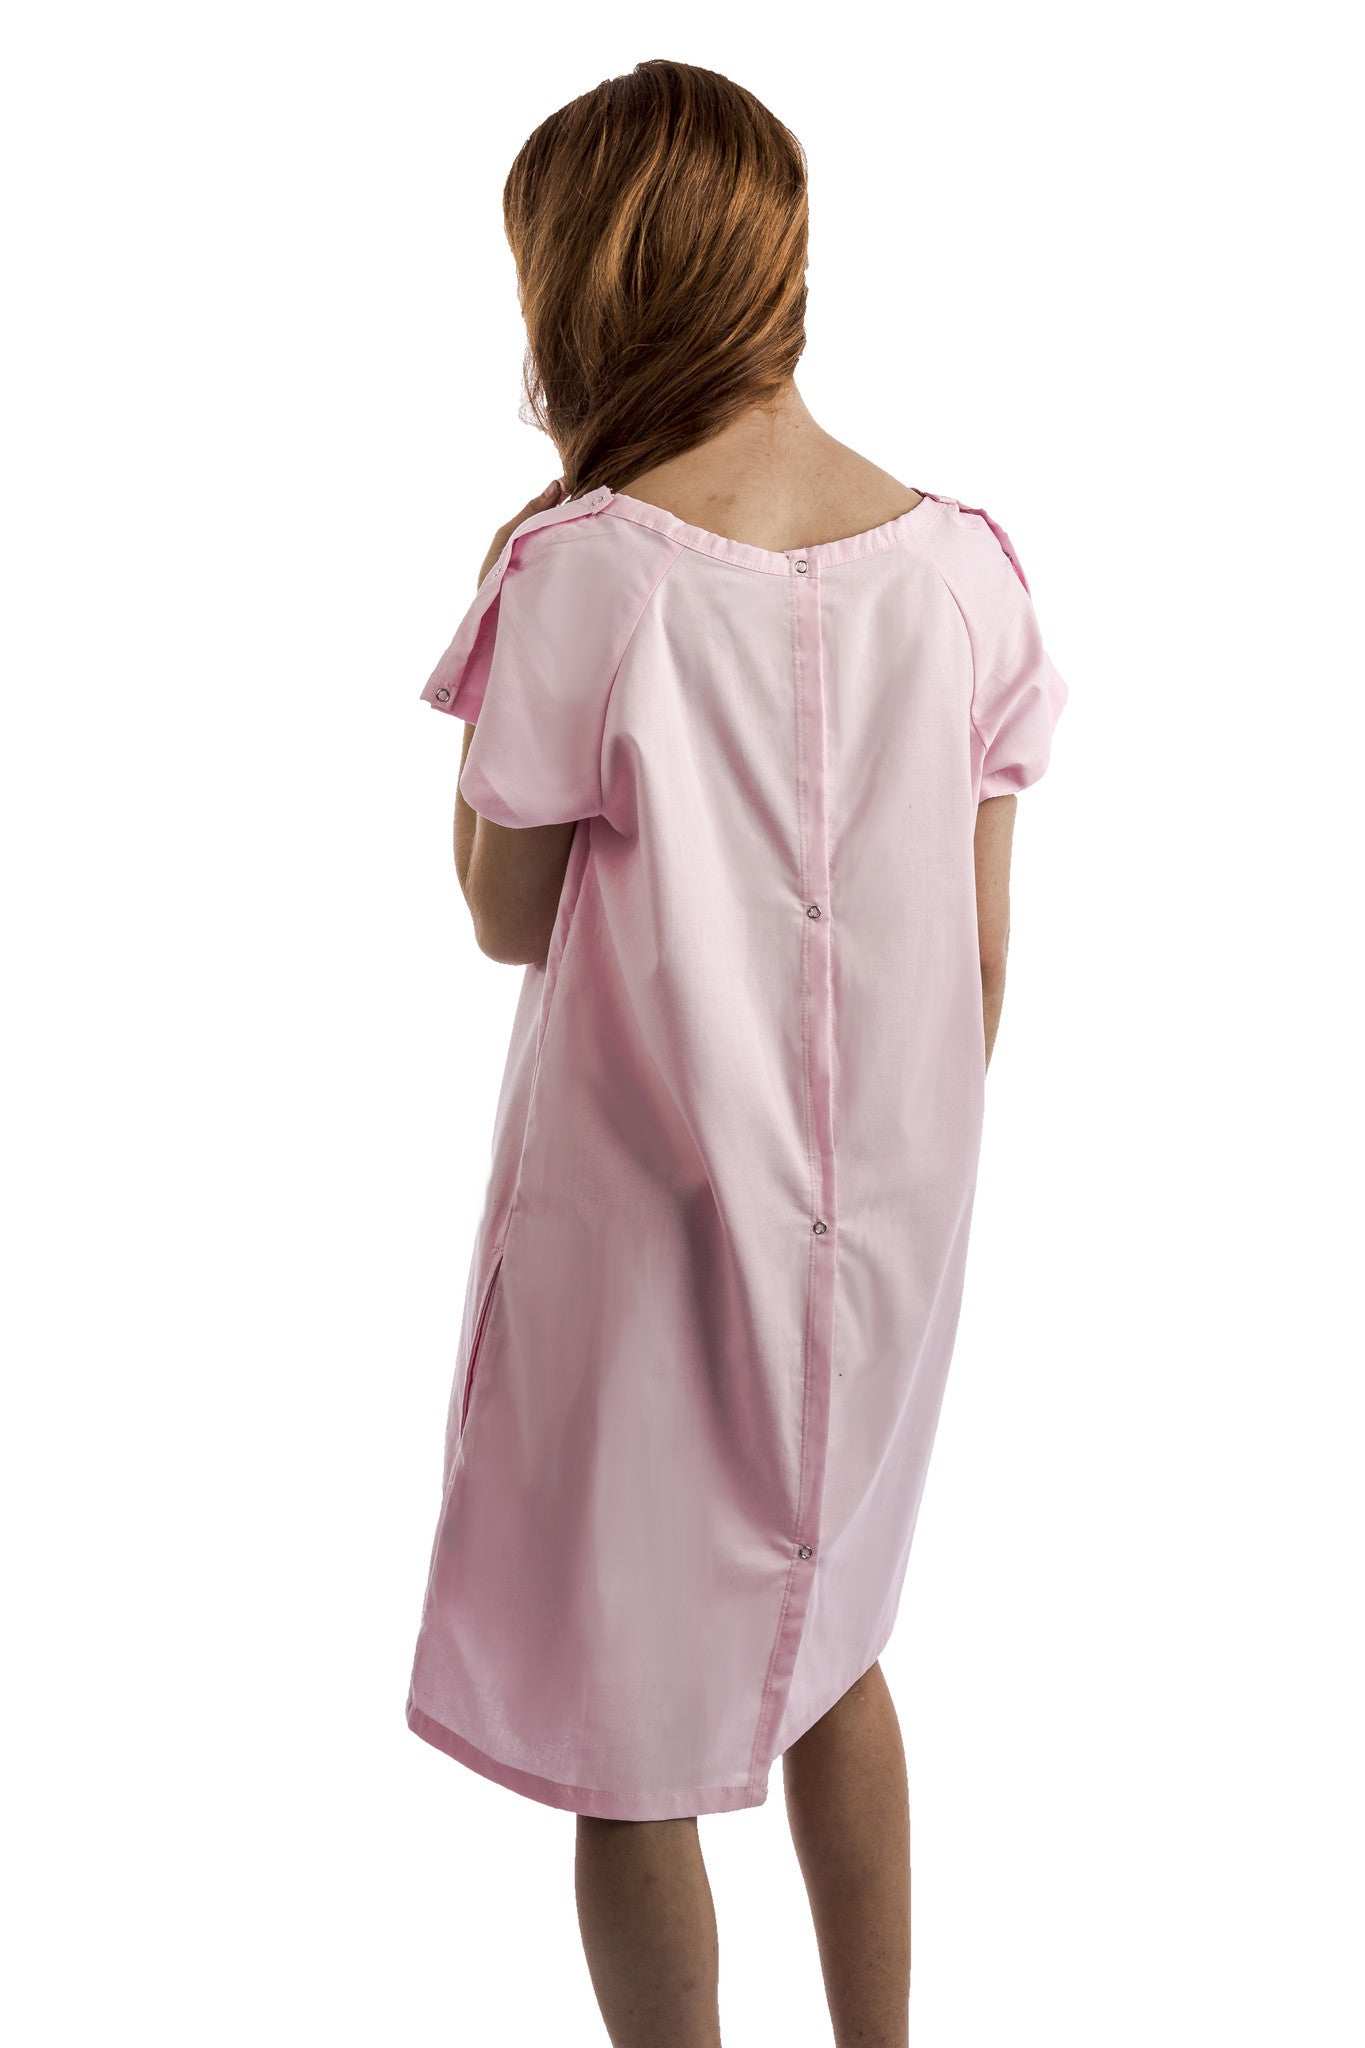 funny hospital gift for women pink gown from behind